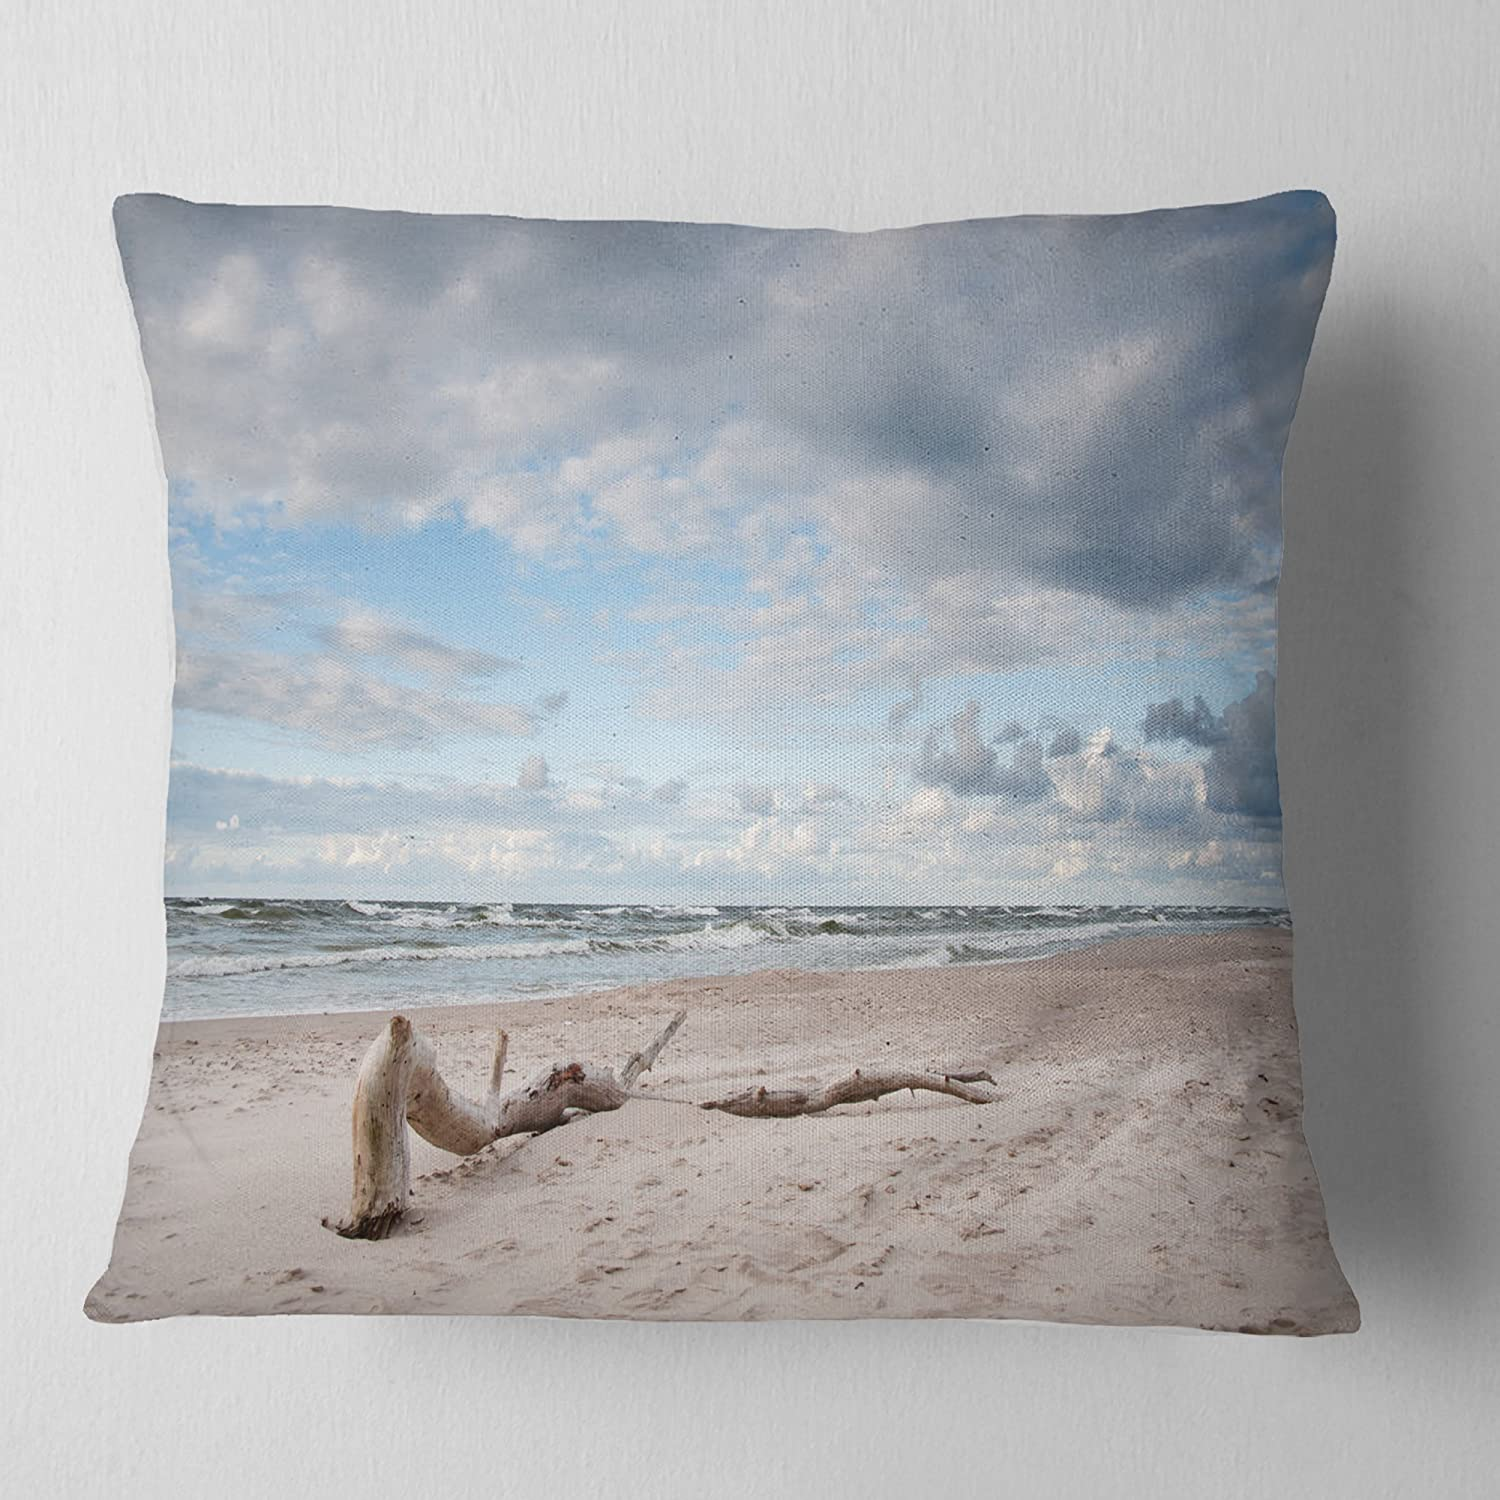 Designart CU11503-26-26 Large Piece of Wood on Beach' Modern Seascape Cushion Cover for Living Room, Sofa Throw Pillow 26 in. x 26 in. in, Insert Printed On Both Side